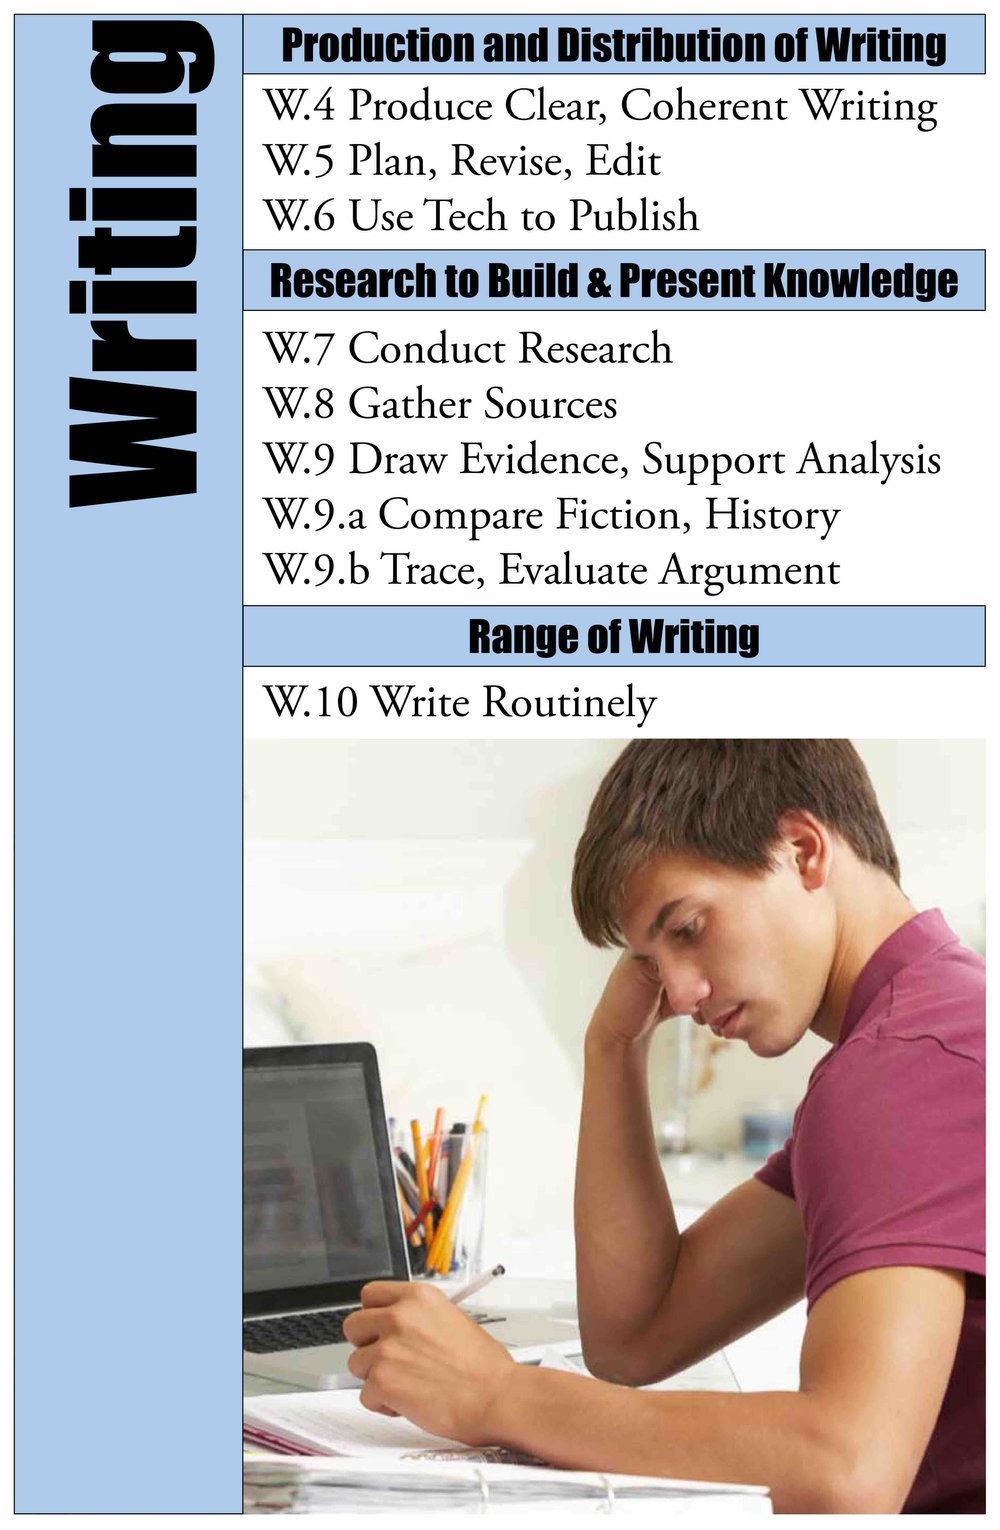 Standards W Revision and Research Web.jpg